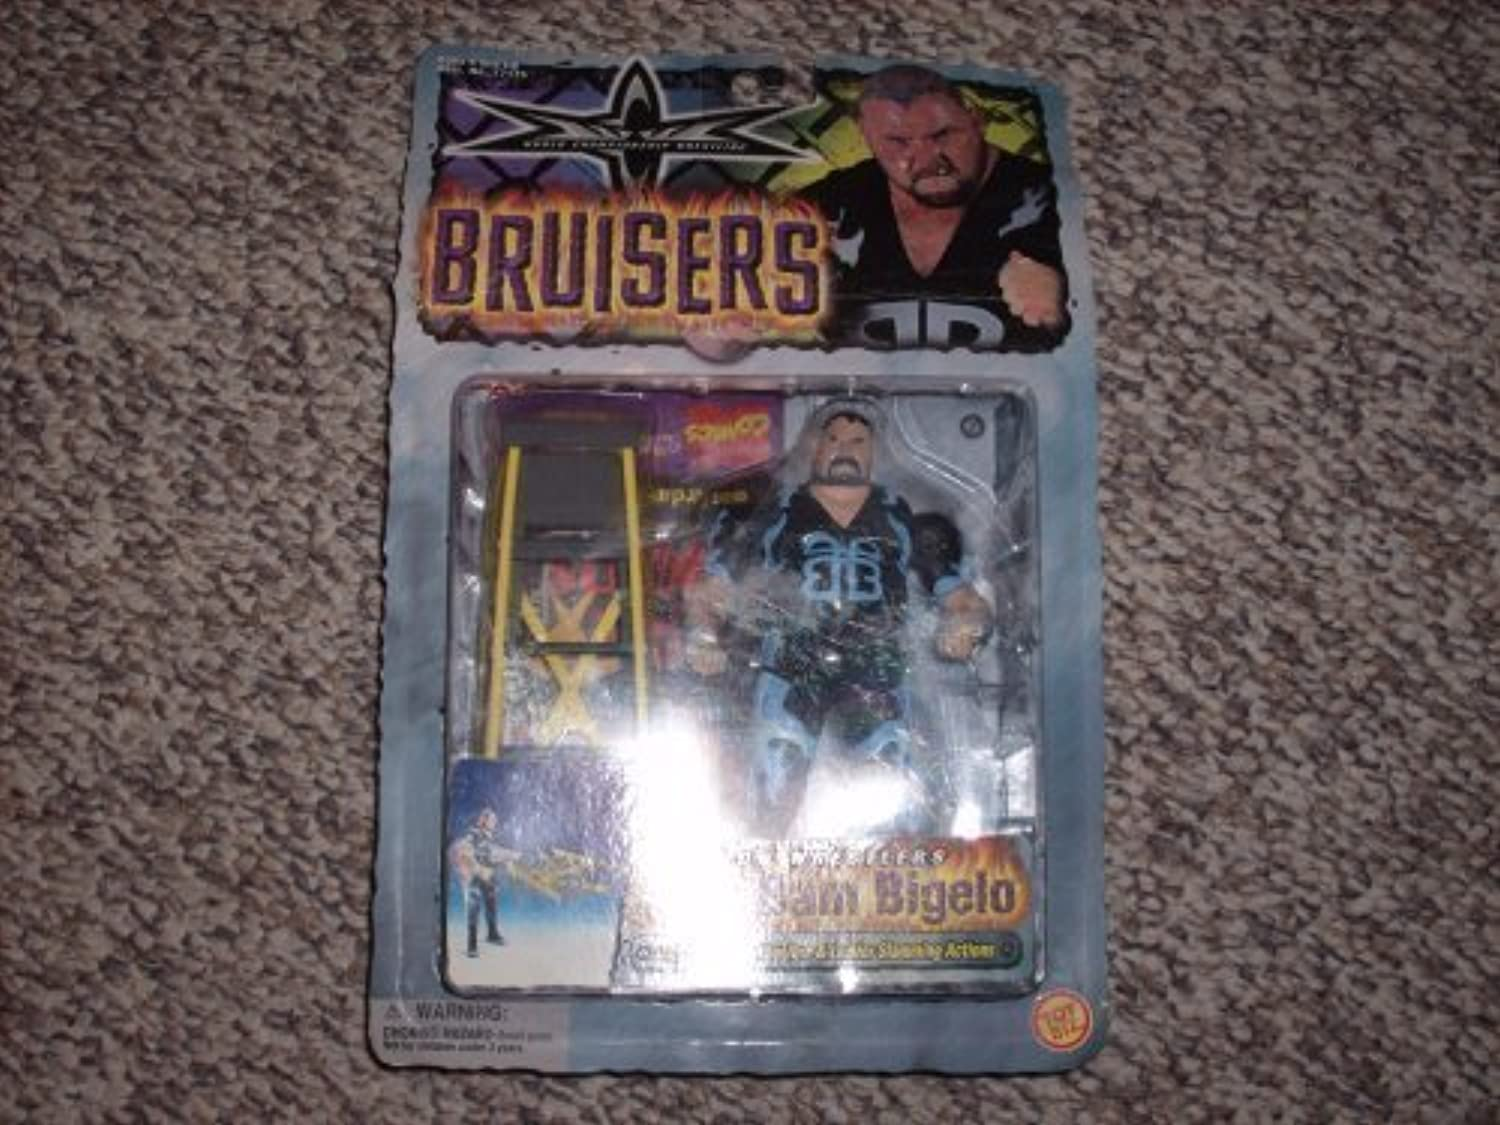 WCW Bruisers Bam Bam Bigelo Action Figure by Toy Biz